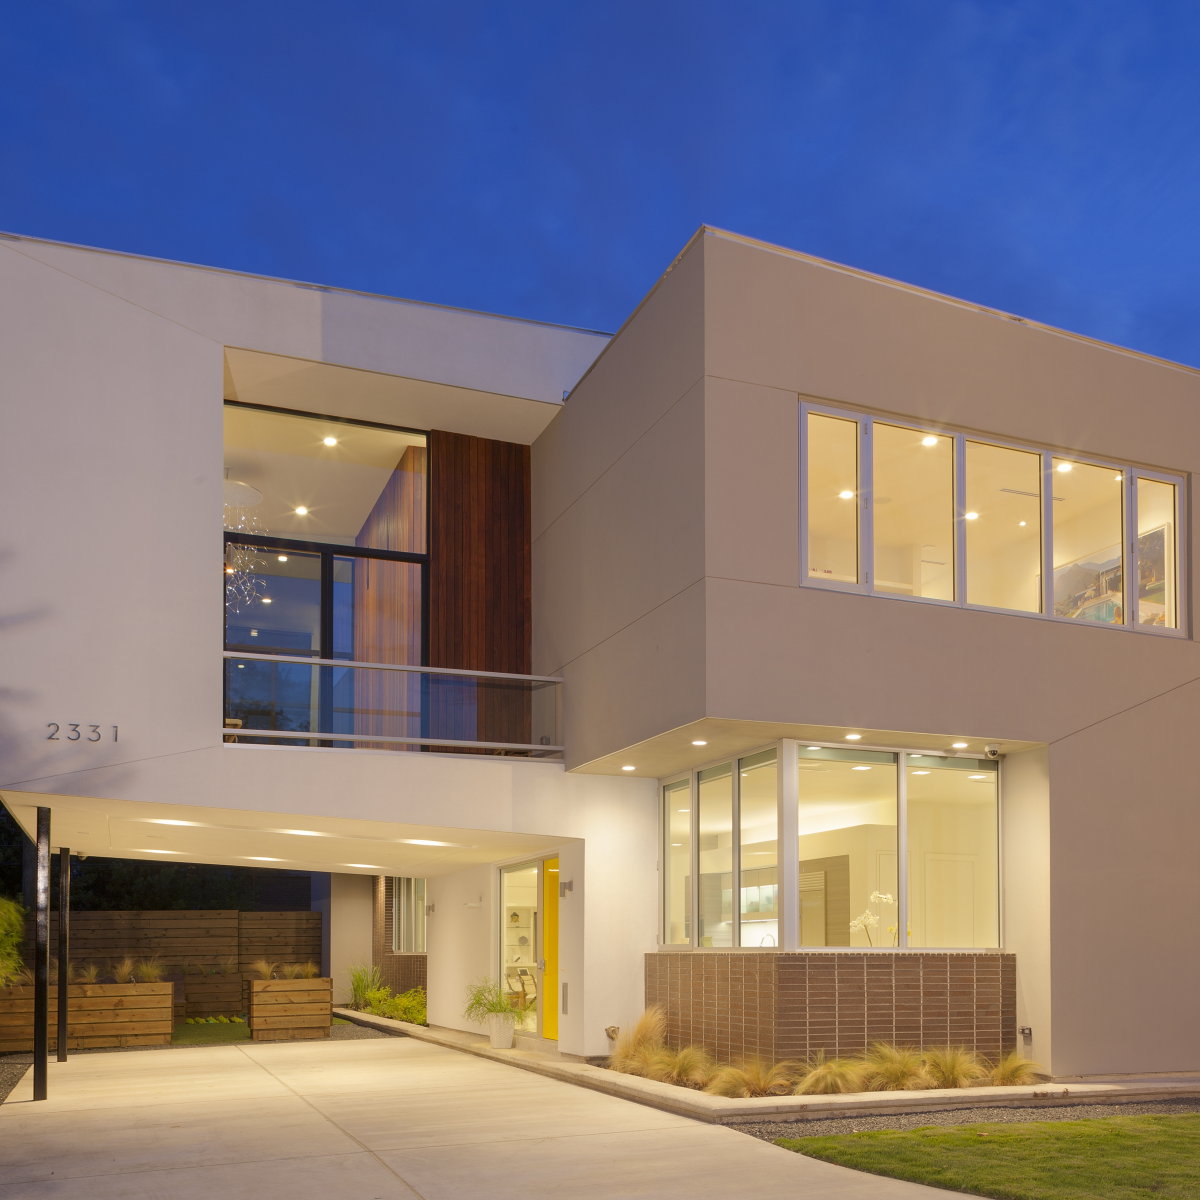 Houstons Most Unique Homes Step Inside High Priced Architect Gems